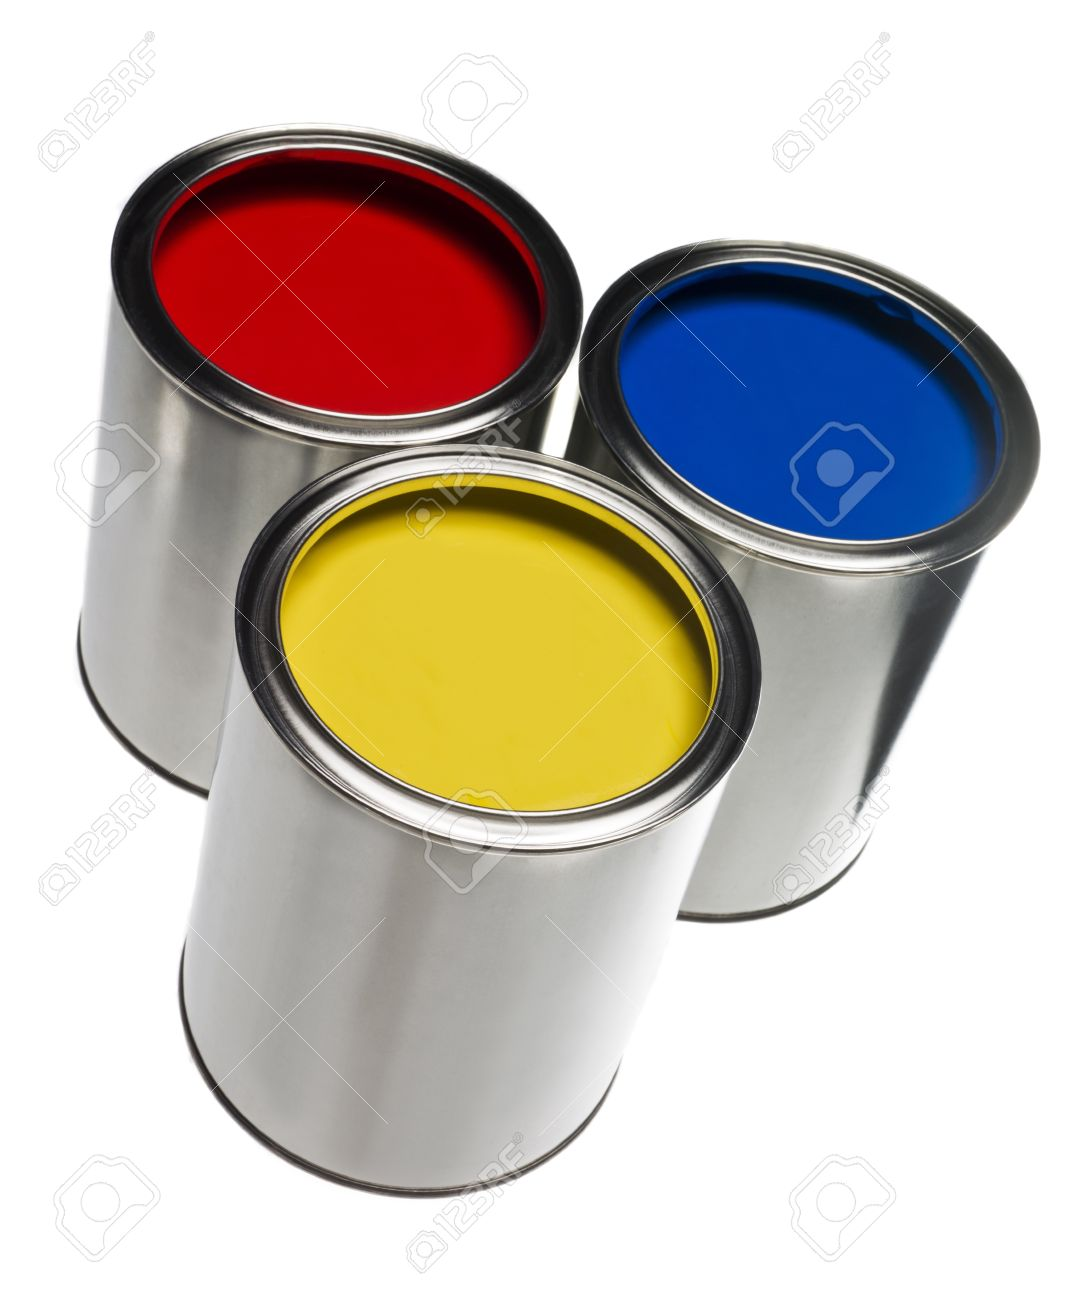 Three Paint cans isolated on white background Stock Photo - 8621583